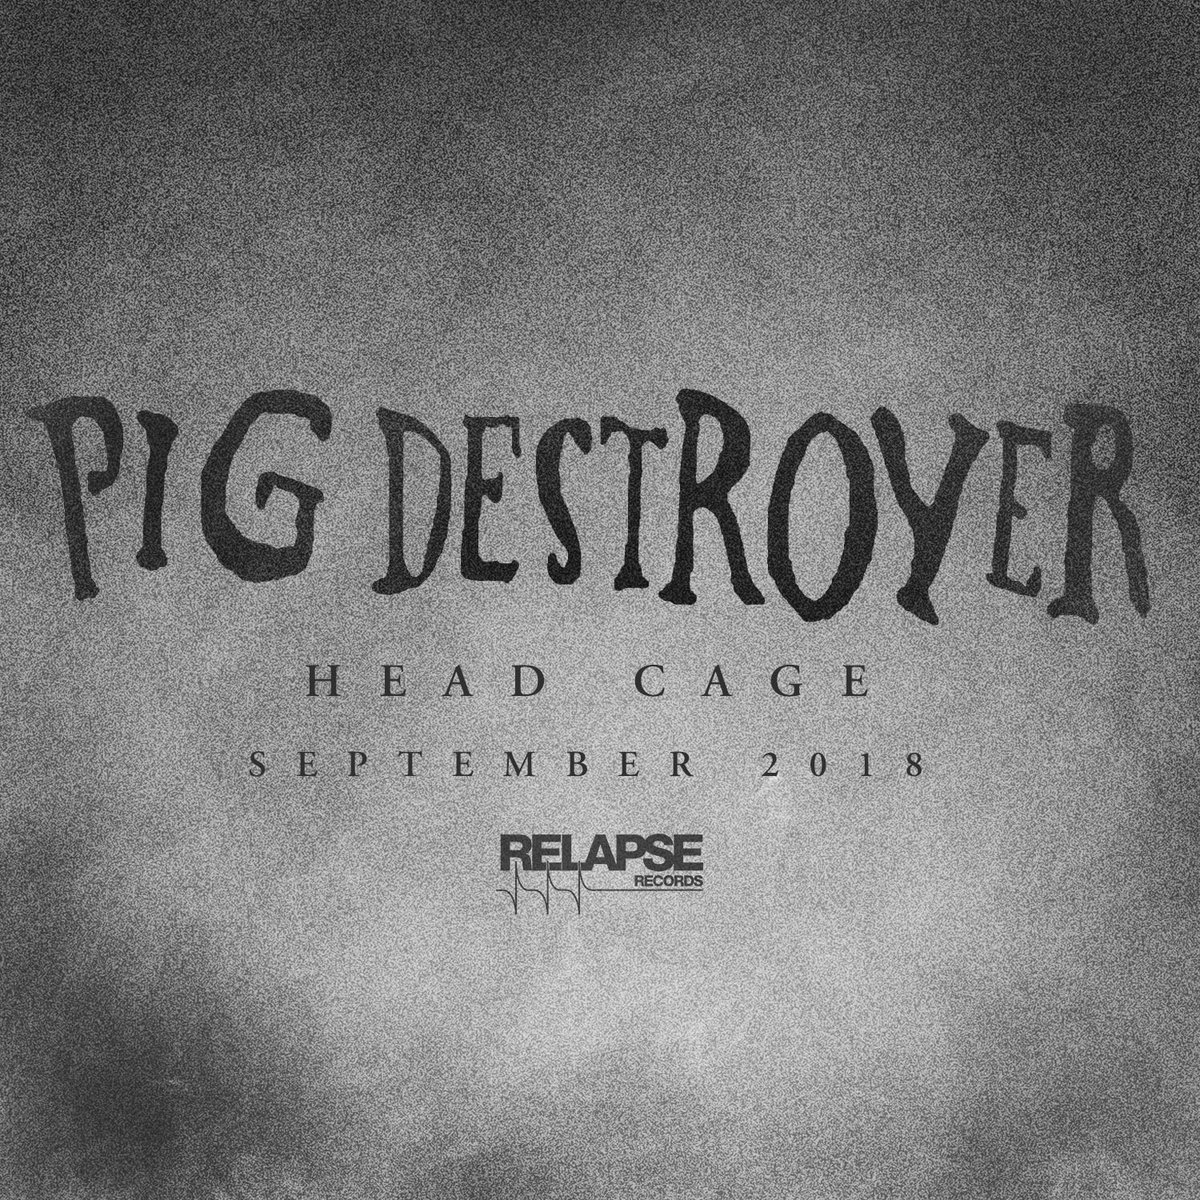 Pig Destroyer new album